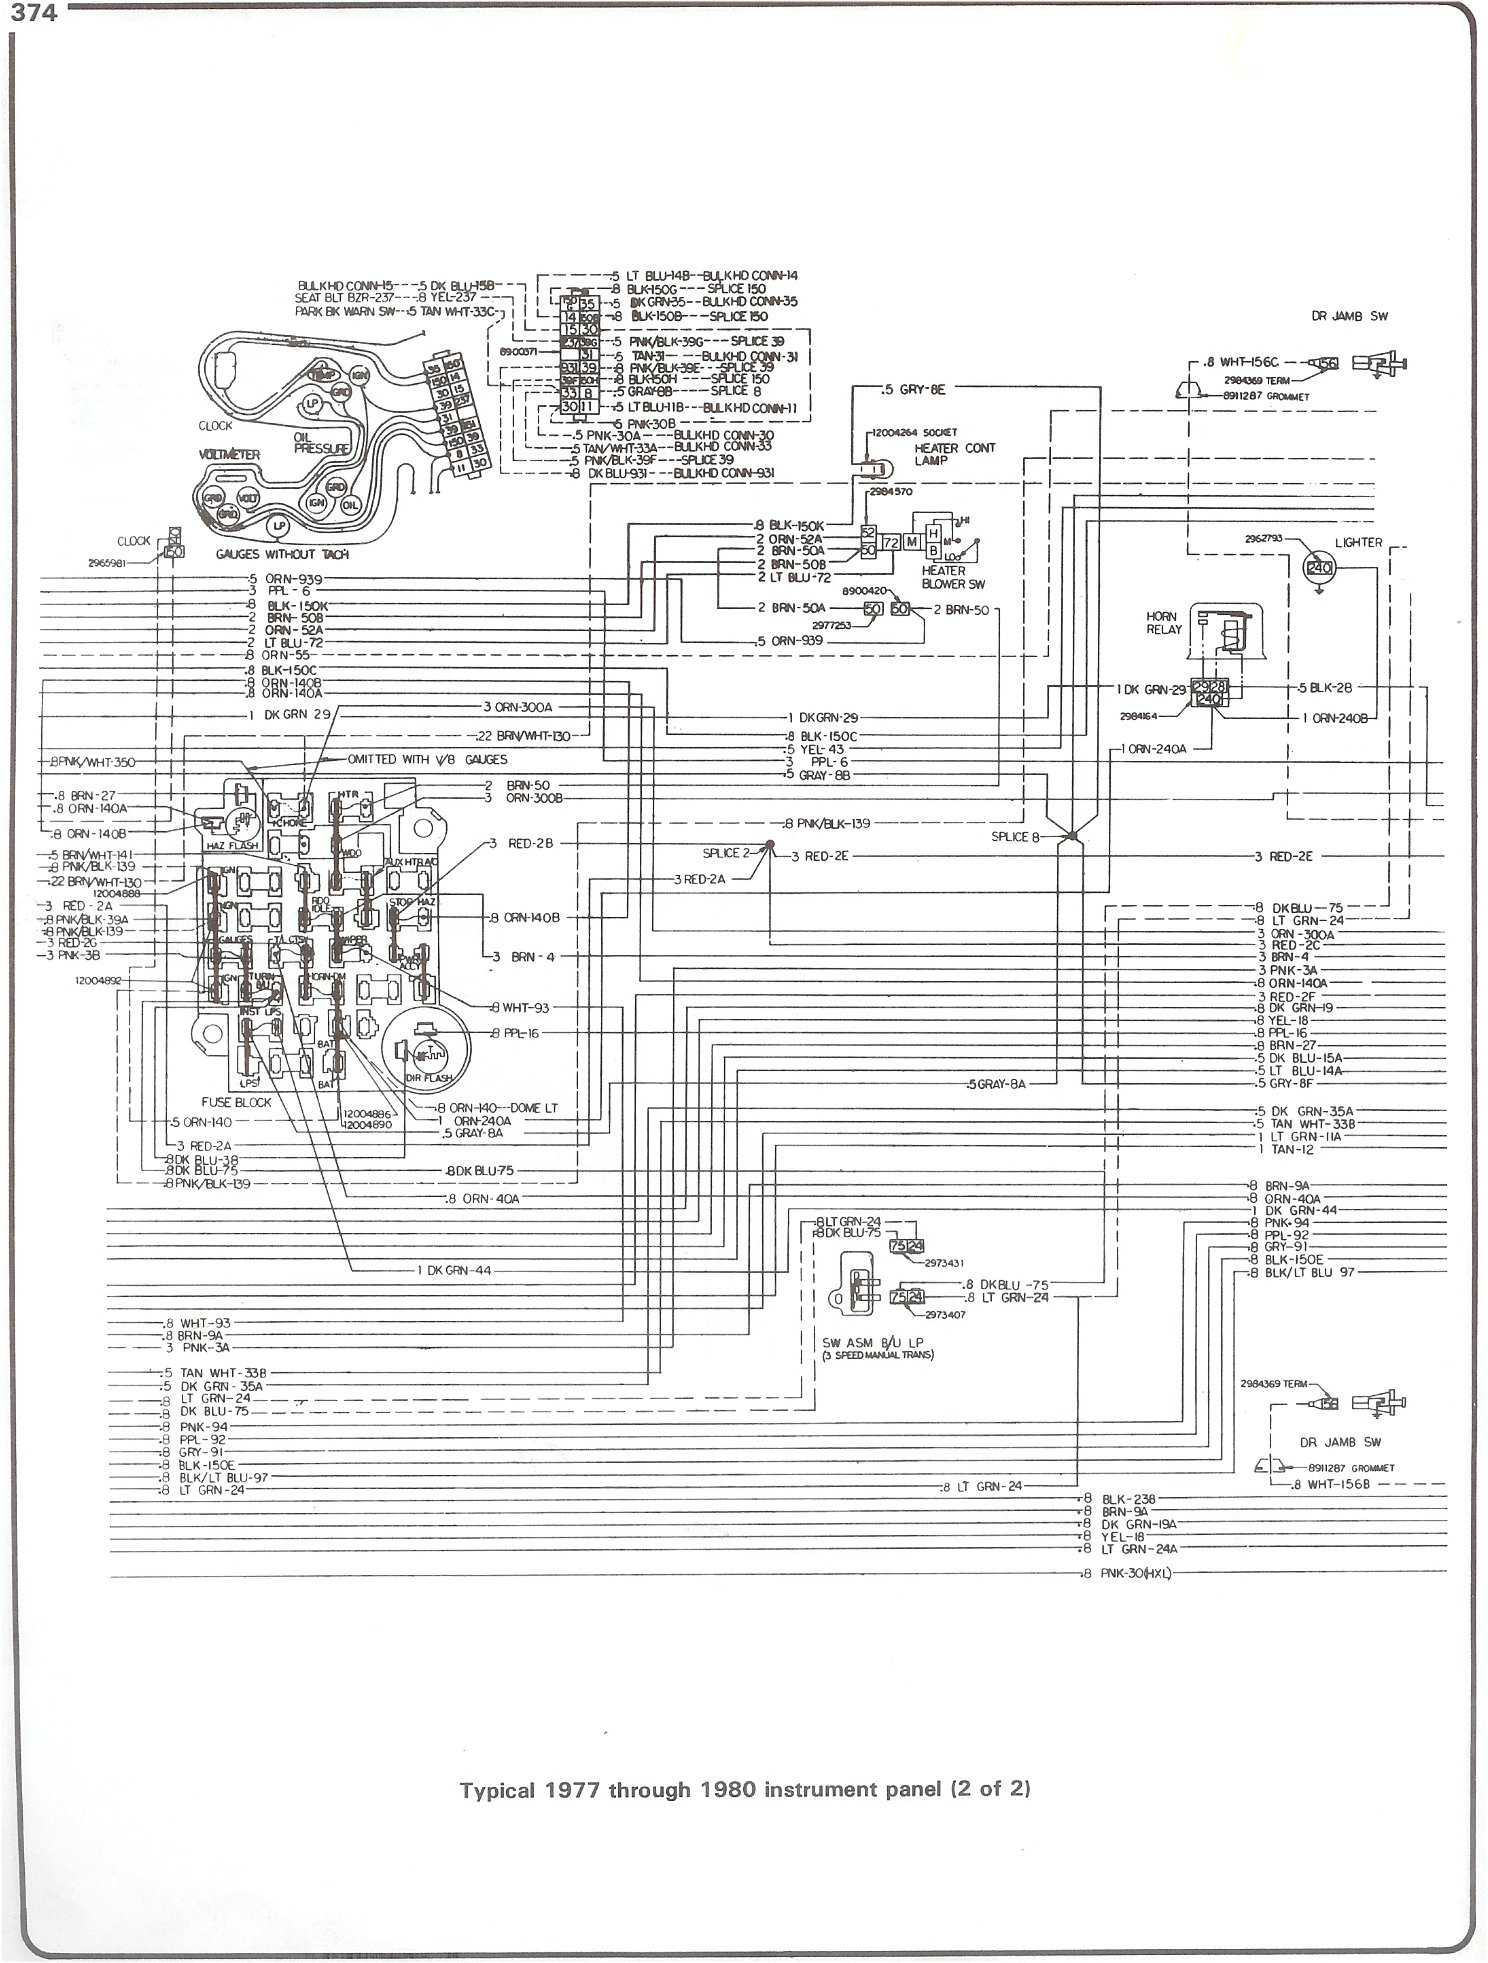 1993 Gmc C1500 Fuse Box Residential Electrical Symbols Diagrams Complete 73 87 Wiring 1500 Location K1500